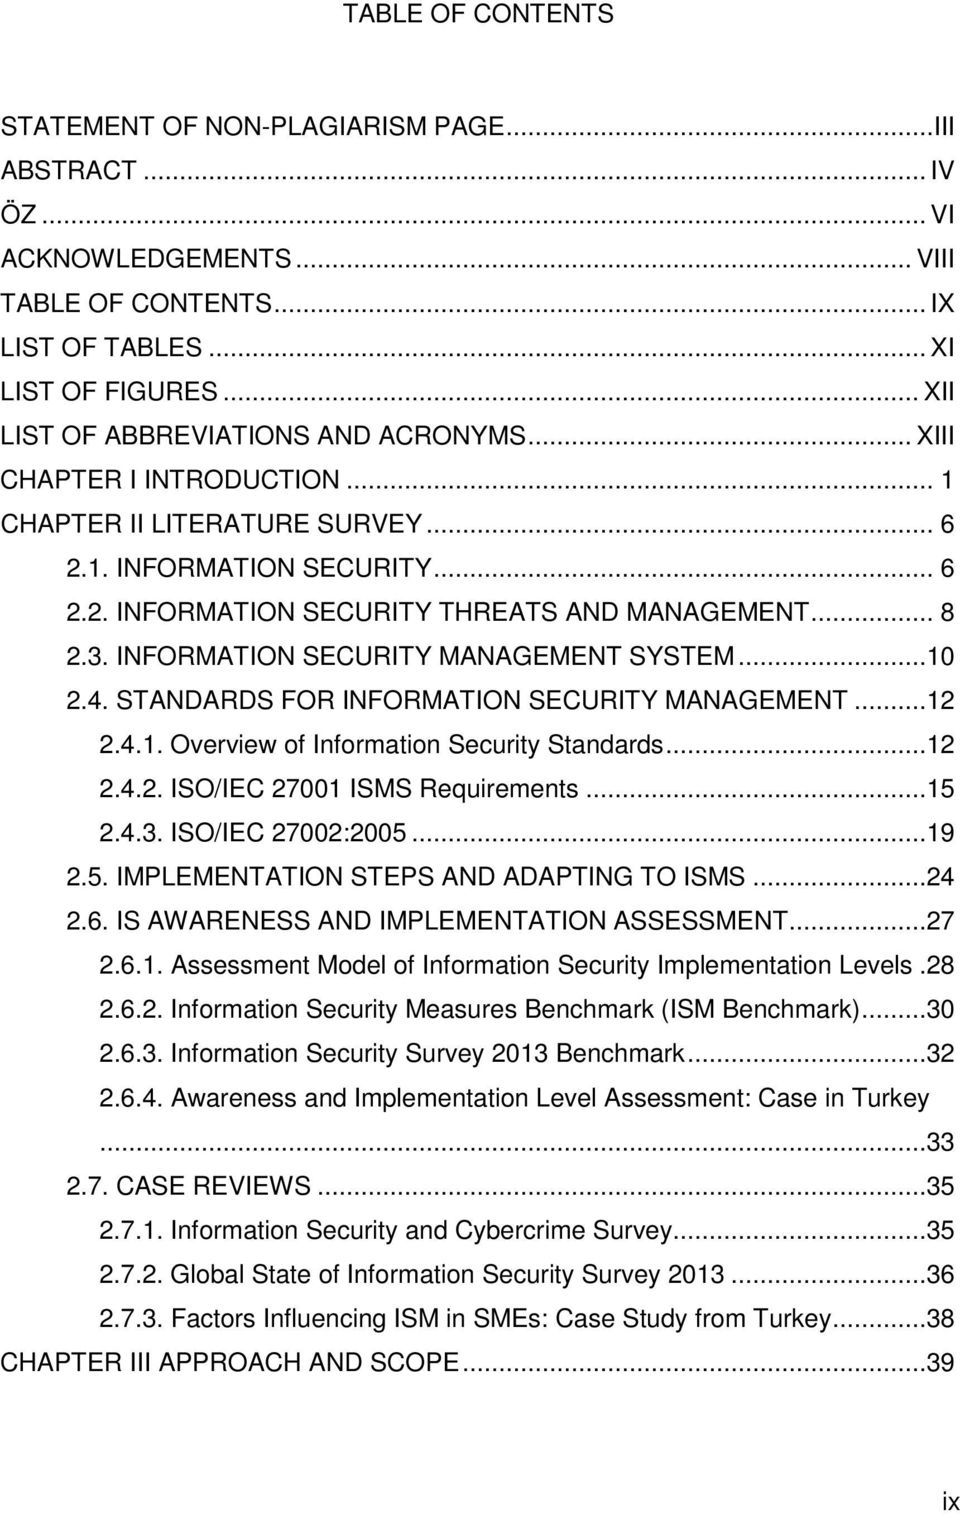 3. INFORMATION SECURITY MANAGEMENT SYSTEM...10 2.4. STANDARDS FOR INFORMATION SECURITY MANAGEMENT...12 2.4.1. Overview of Information Security Standards...12 2.4.2. ISO/IEC 27001 ISMS Requirements.